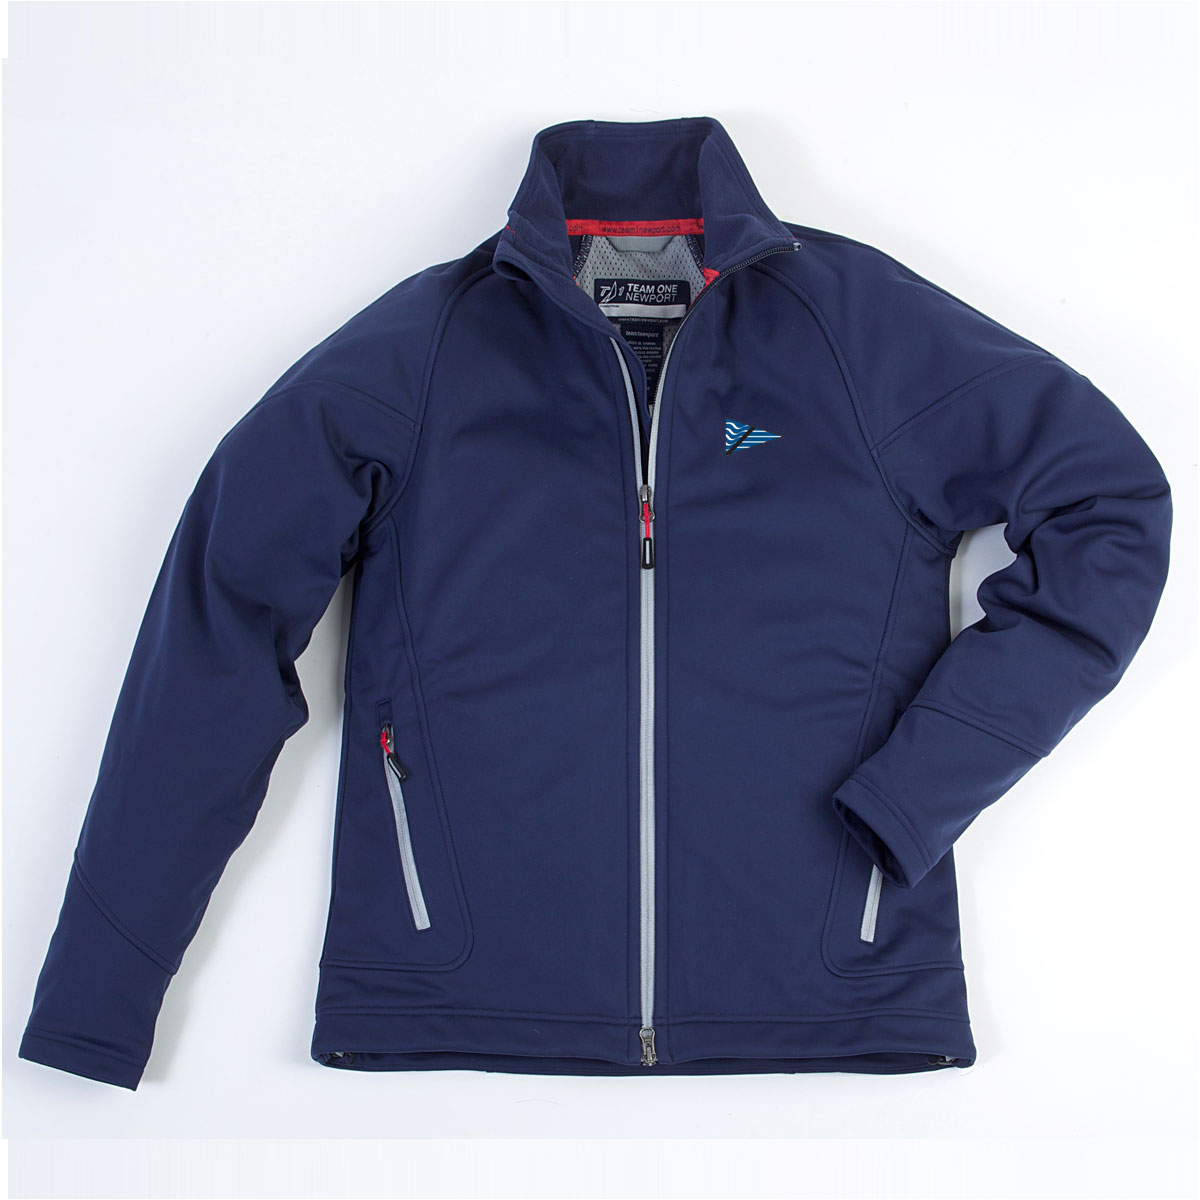 Breakwater Yacht Club - M's Scrambler Softshell Jacket